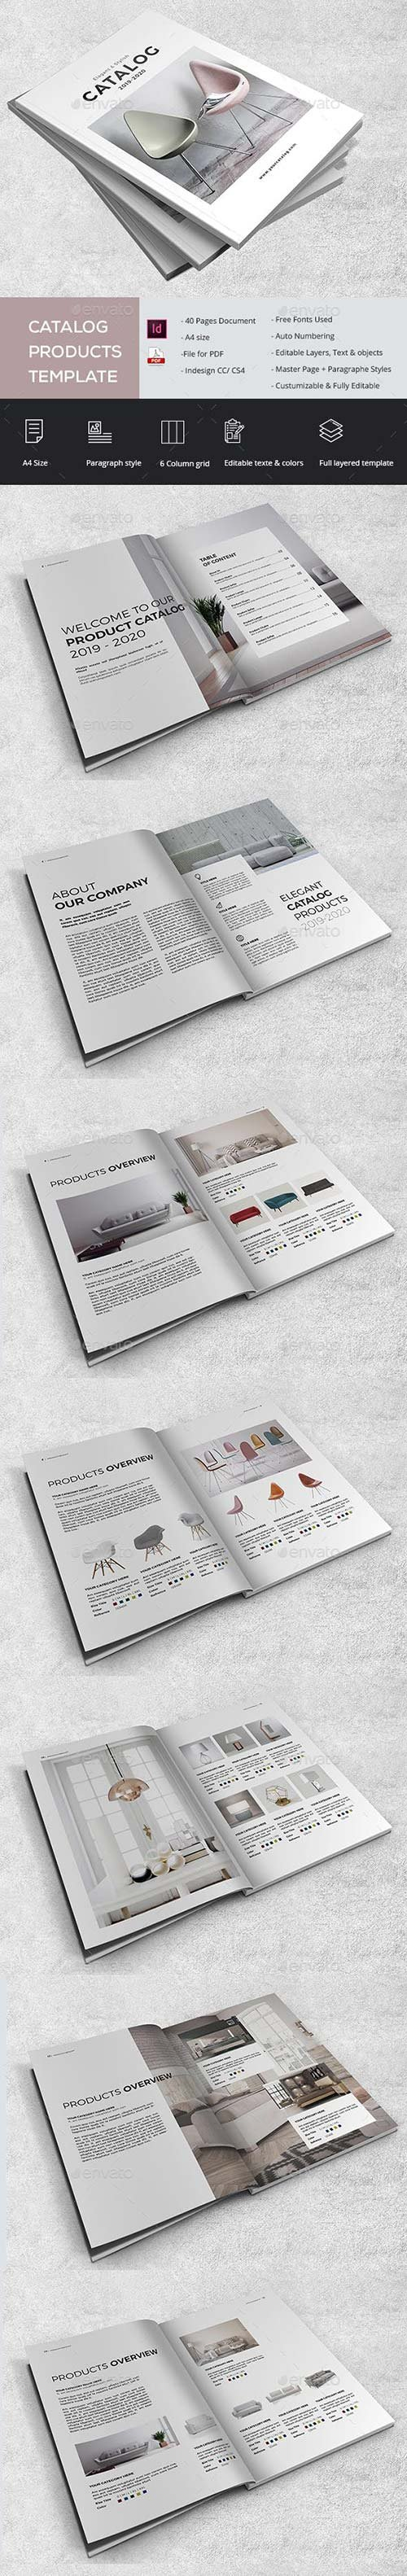 GraphicRiver - Elagant Catalog Products 22875835